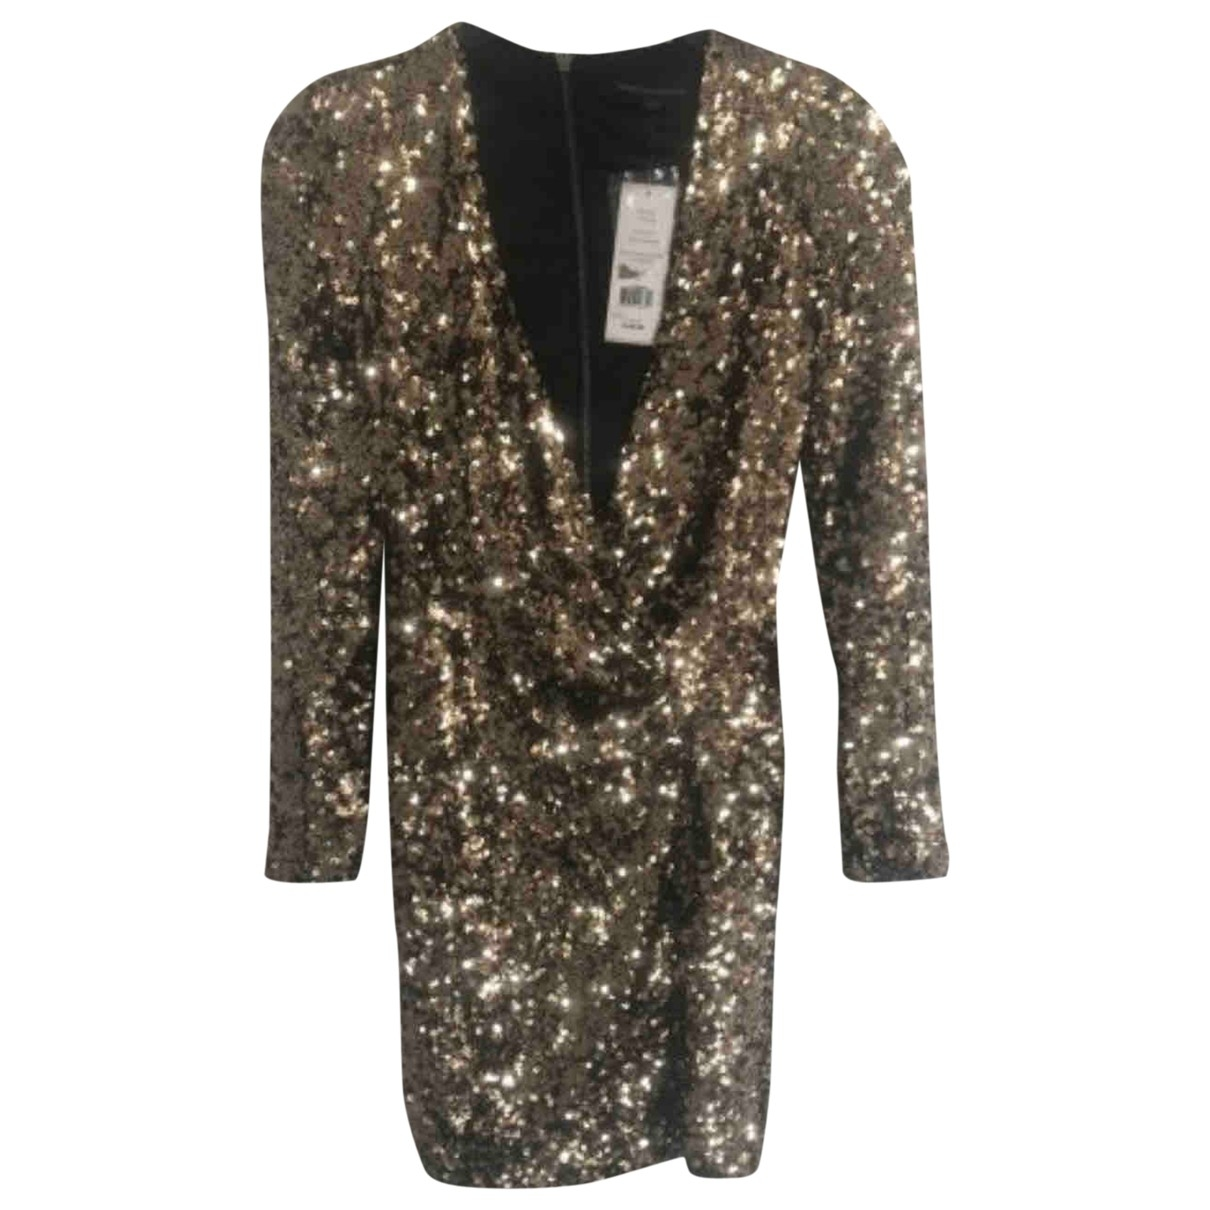 French Connection - Robe   pour femme en a paillettes - dore